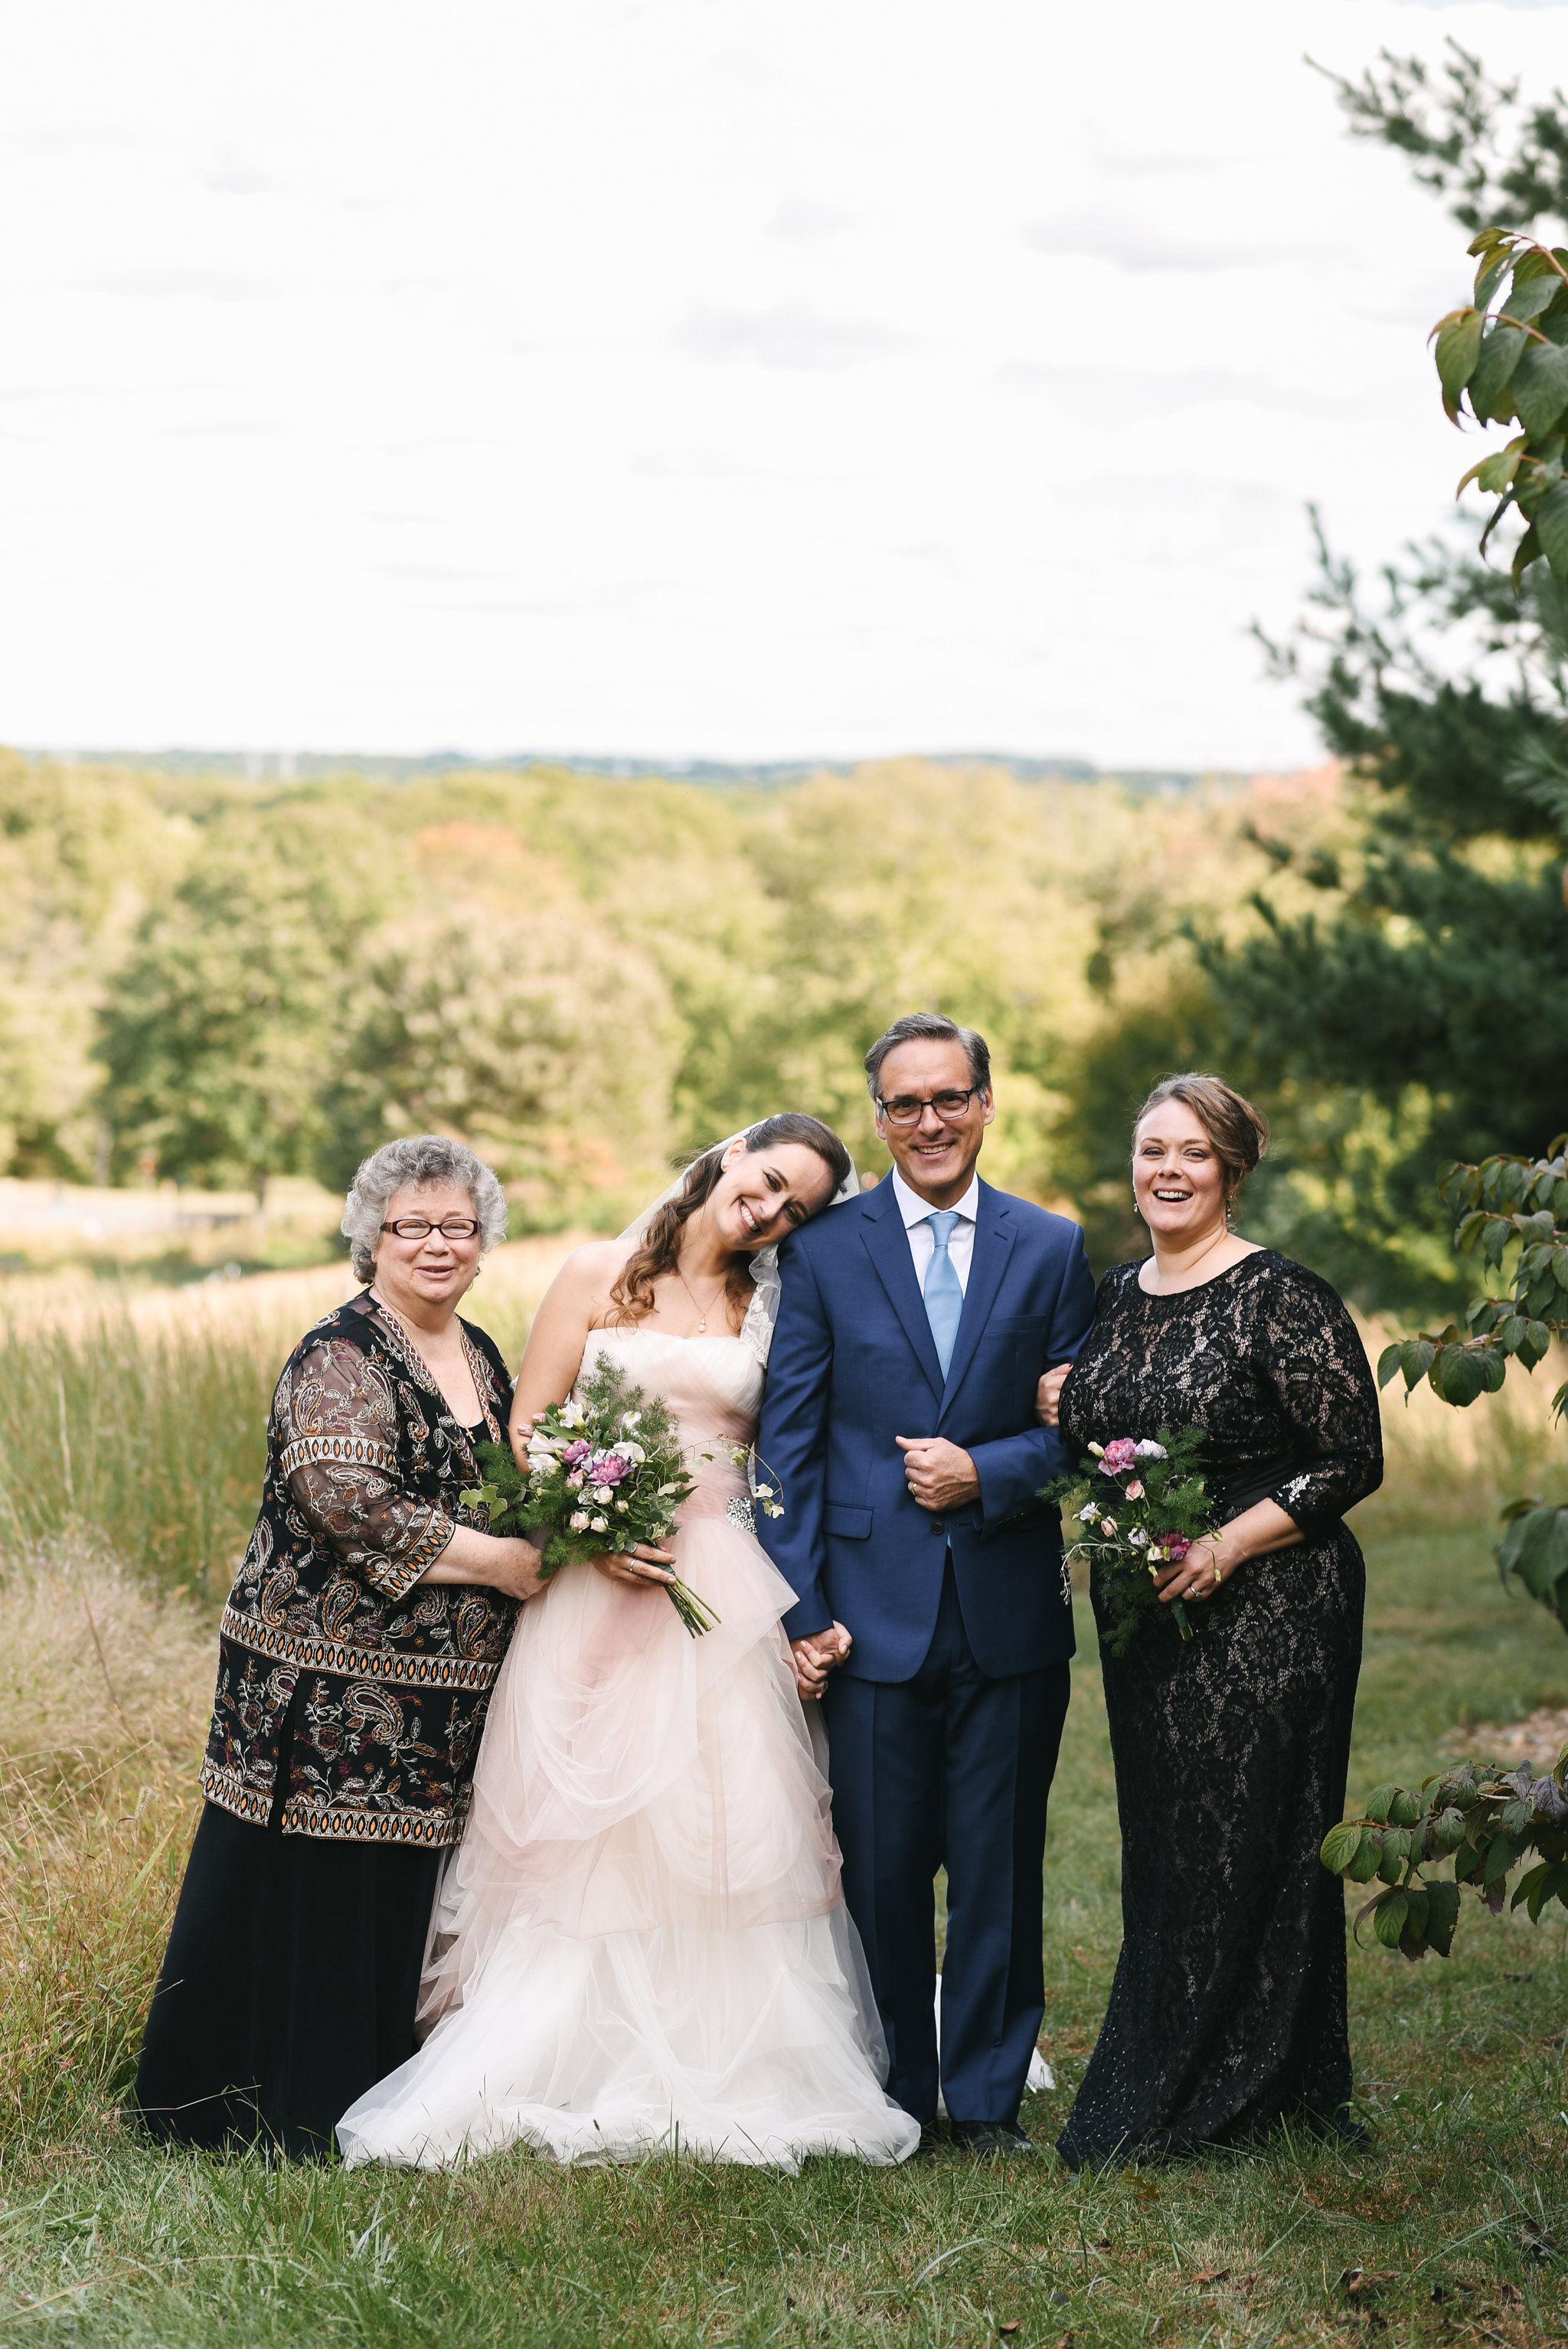 Vintage, DIY, Rustic, Germantown, Baltimore Wedding Photographer, Alternative, Casual, Outdoor Wedding, Church Wedding, Whimsical, Campground, DIY Wedding Bouquet, Portrait Photo, Family Photo